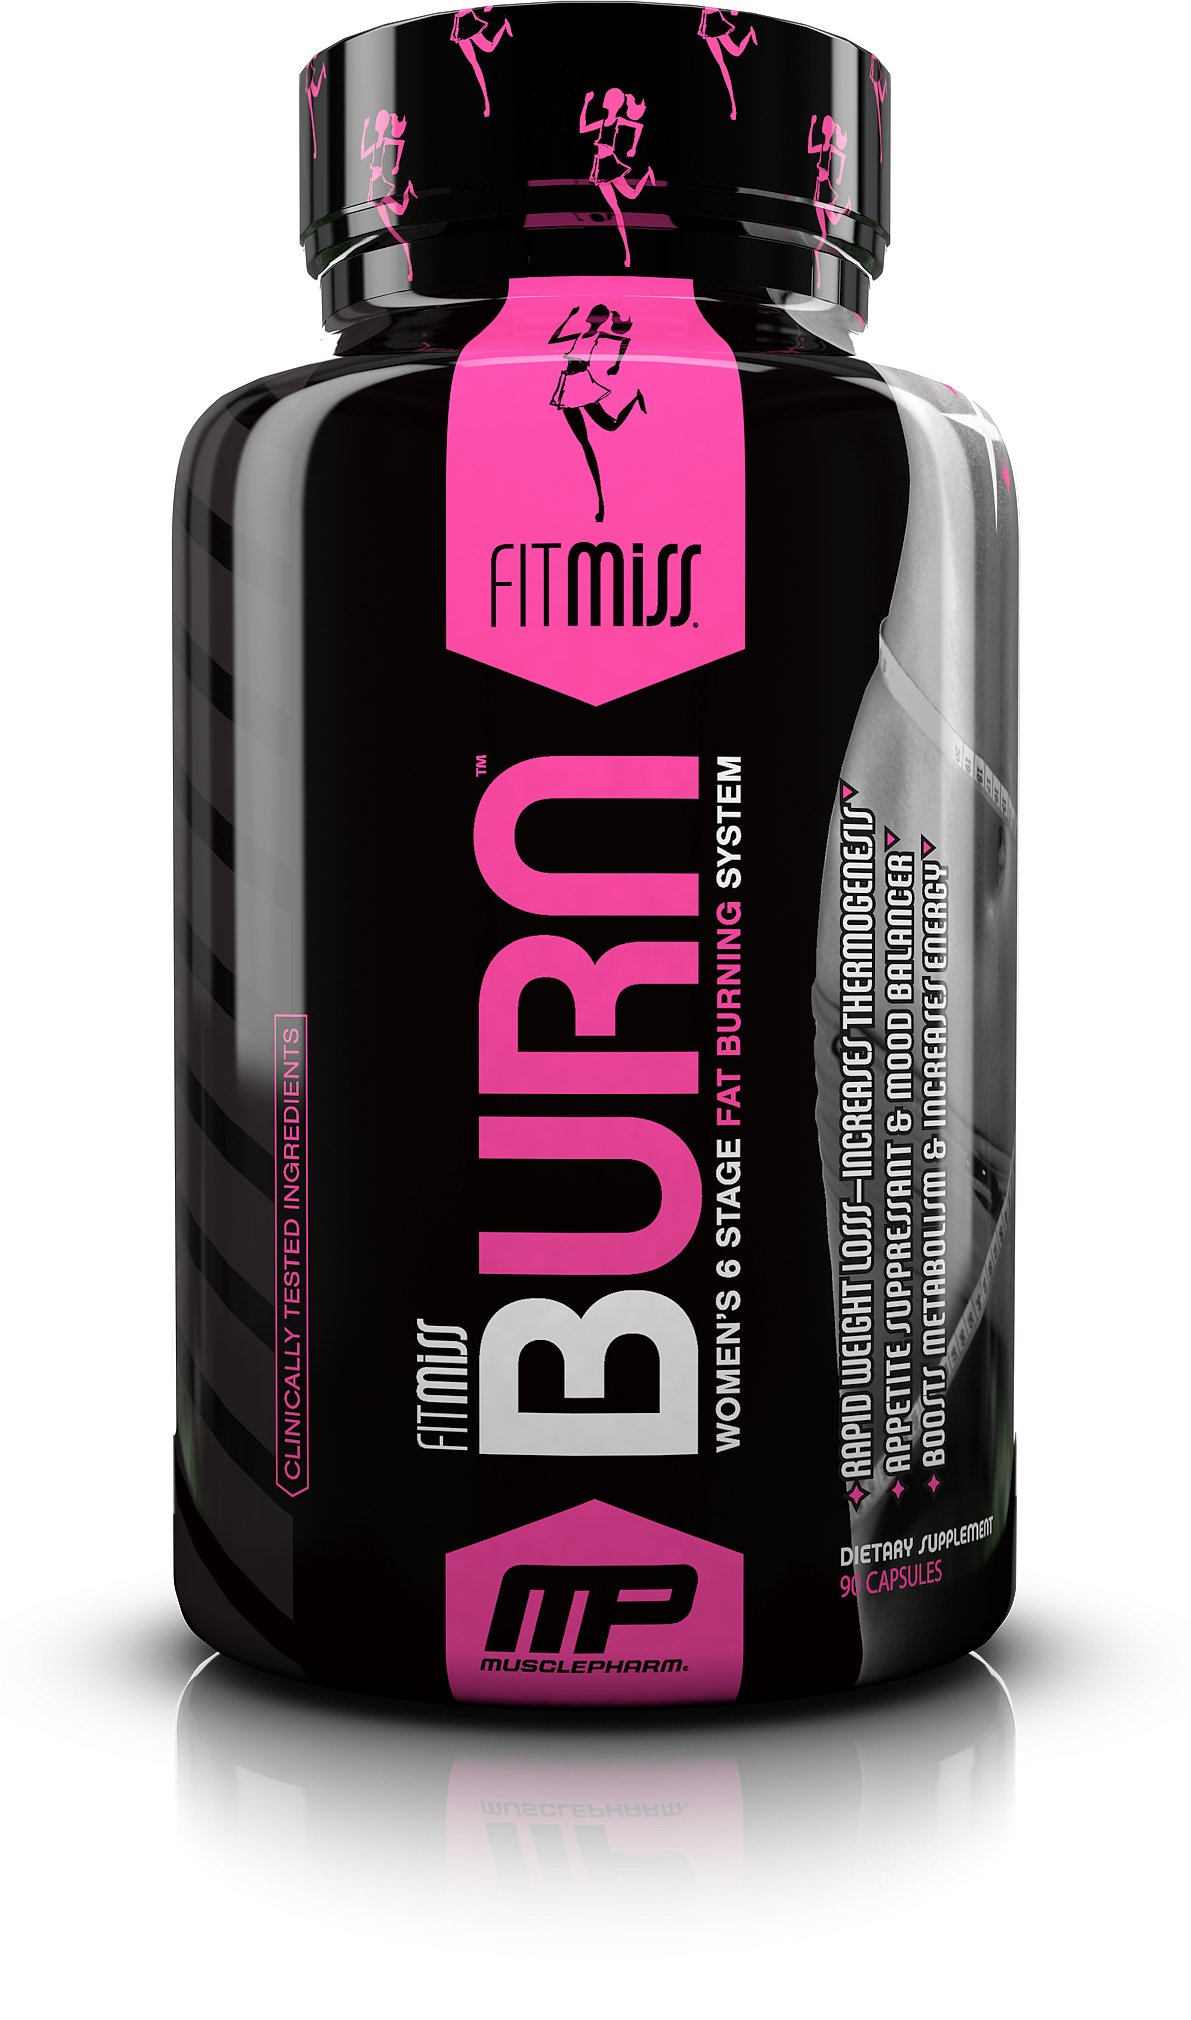 FitMiss Burn, Women's Weight Management, Fat Burner that Supports Appetite Control, Enhanced Mood, Energy & Metabolism, Capsules, 90 Count, 45 Servings by FitMiss